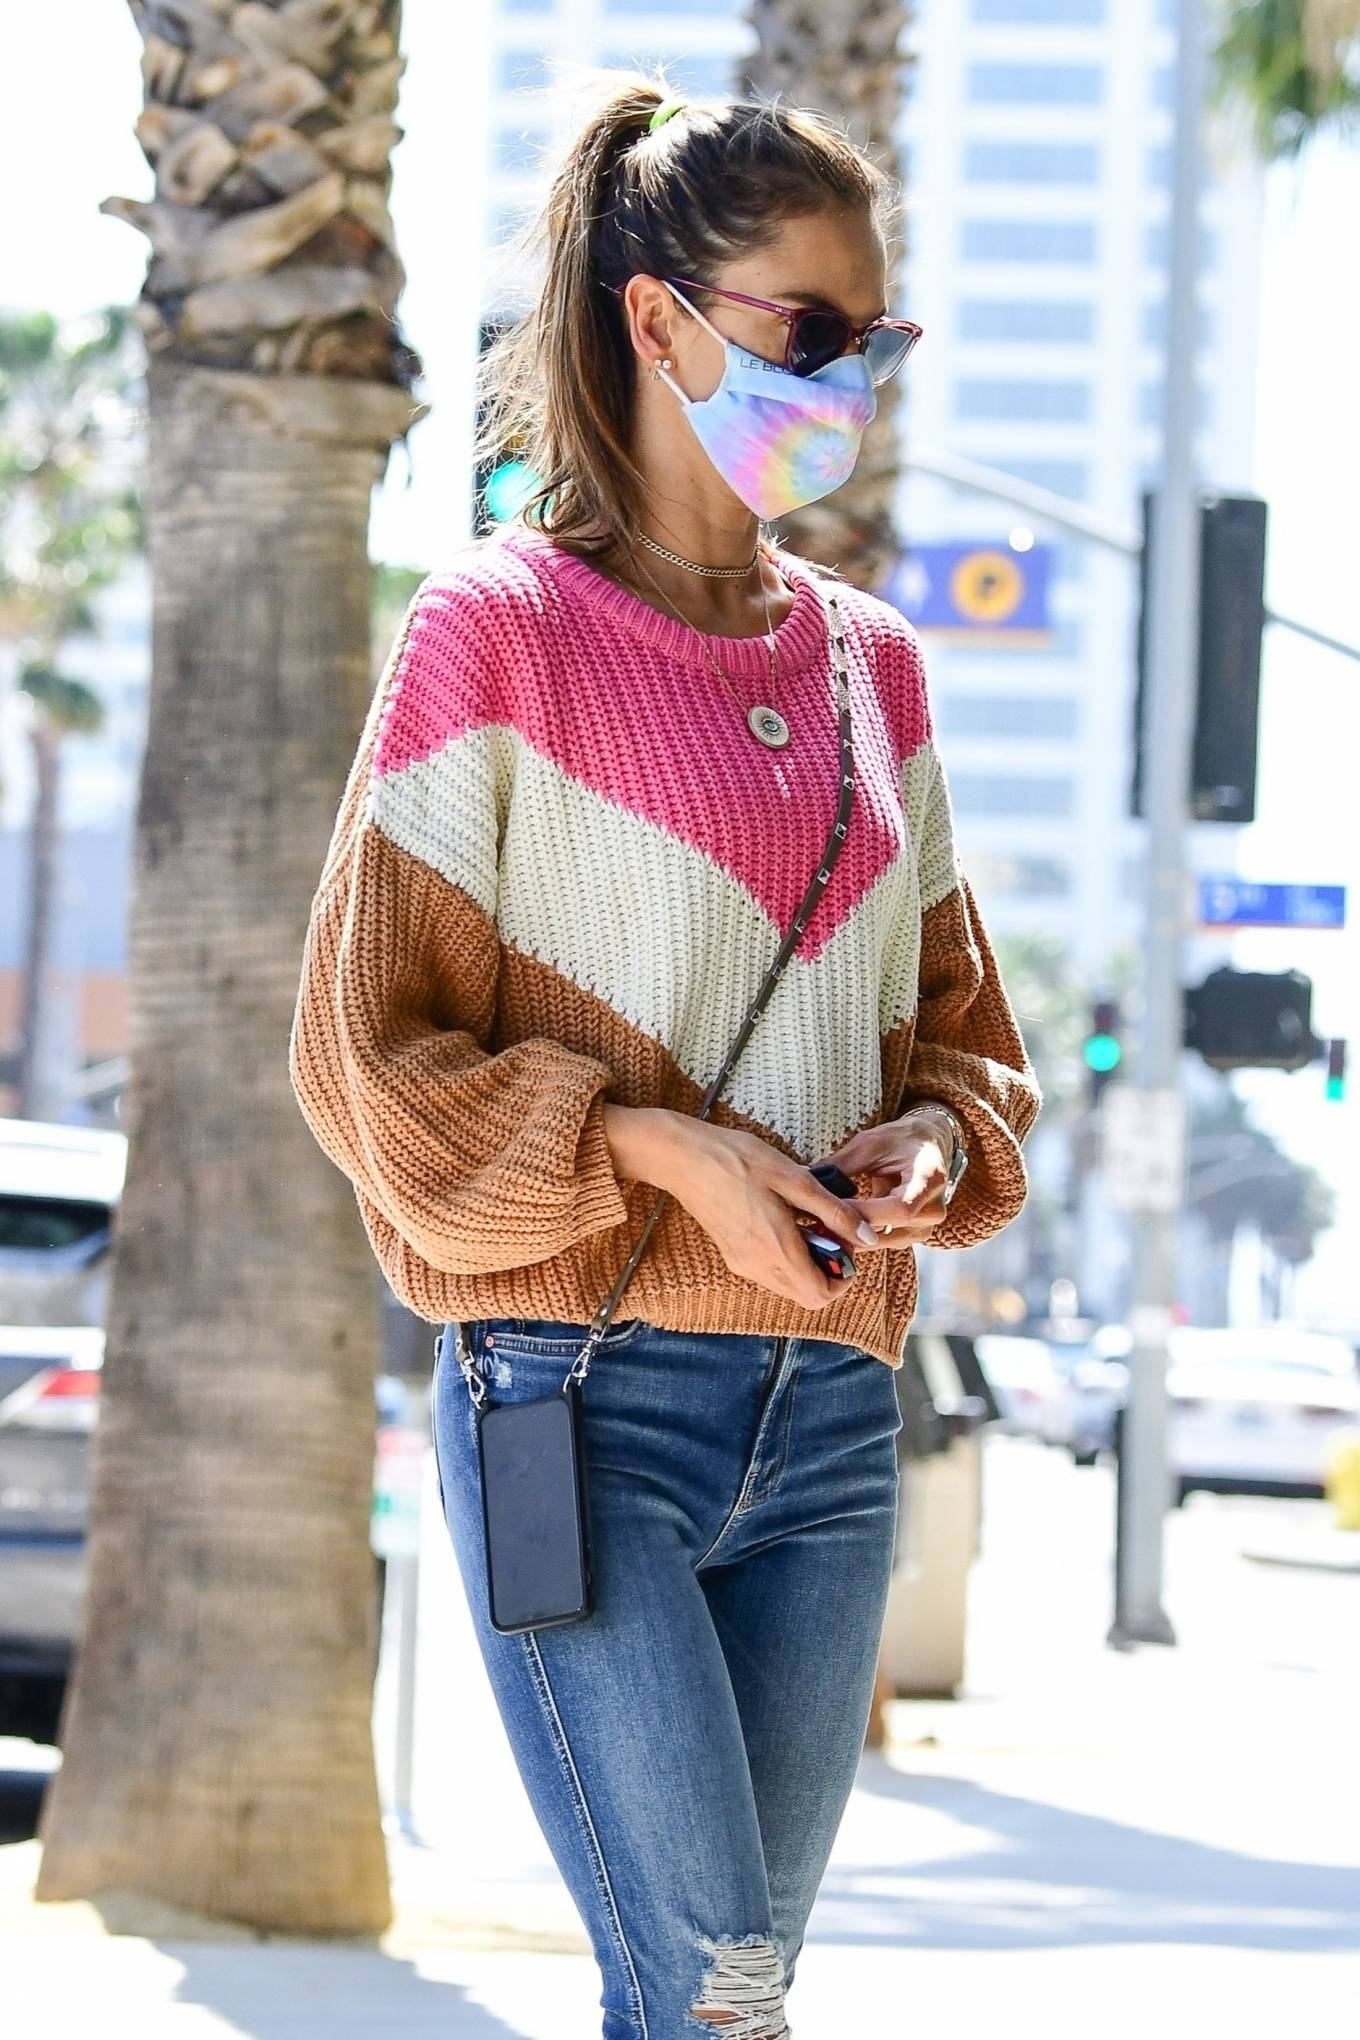 Alessandra Ambrosio, tan sneakers, black sunglasses, oversized sweater, round, lace-up, flat heel, brown sneakers, distressed blue jeans. Alessandra Ambrosio rocking round tan brown lace-up sneakers with flat heel